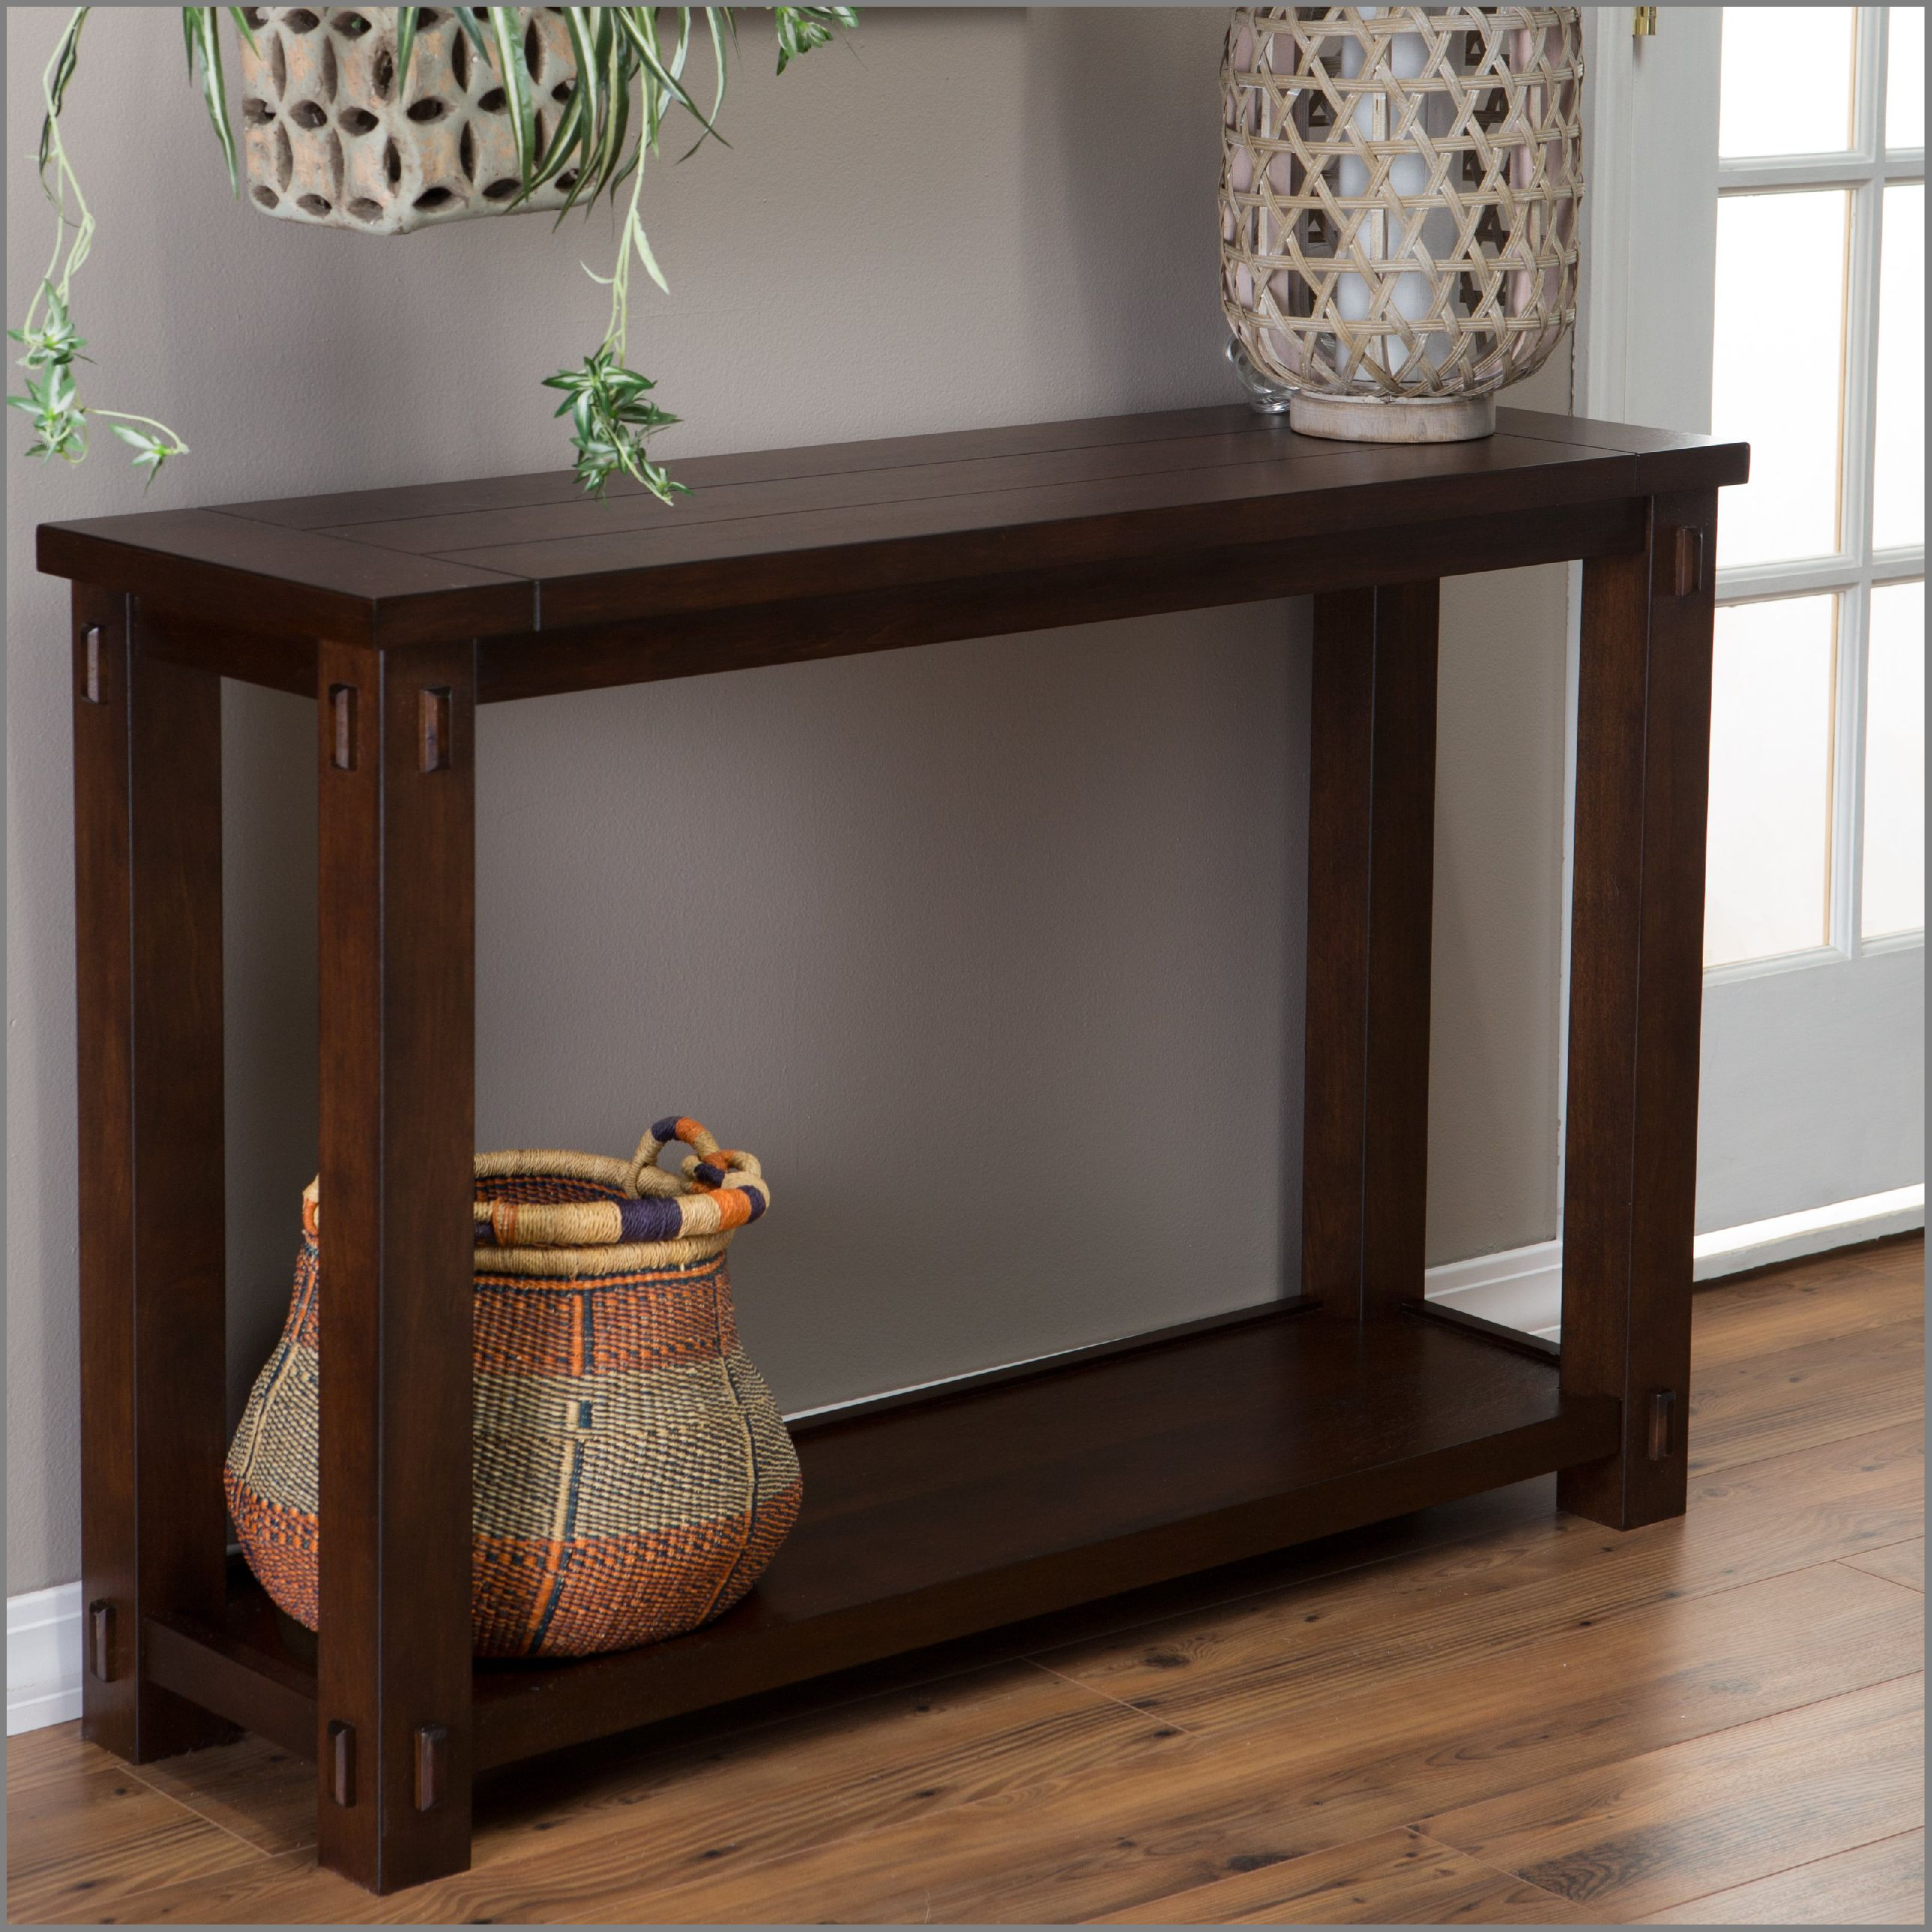 narrow console table inches deep high shallow depth tree couch tables for inch accent behind full size end toronto plant rack dinette sets metal floor threshold antique drop leaf